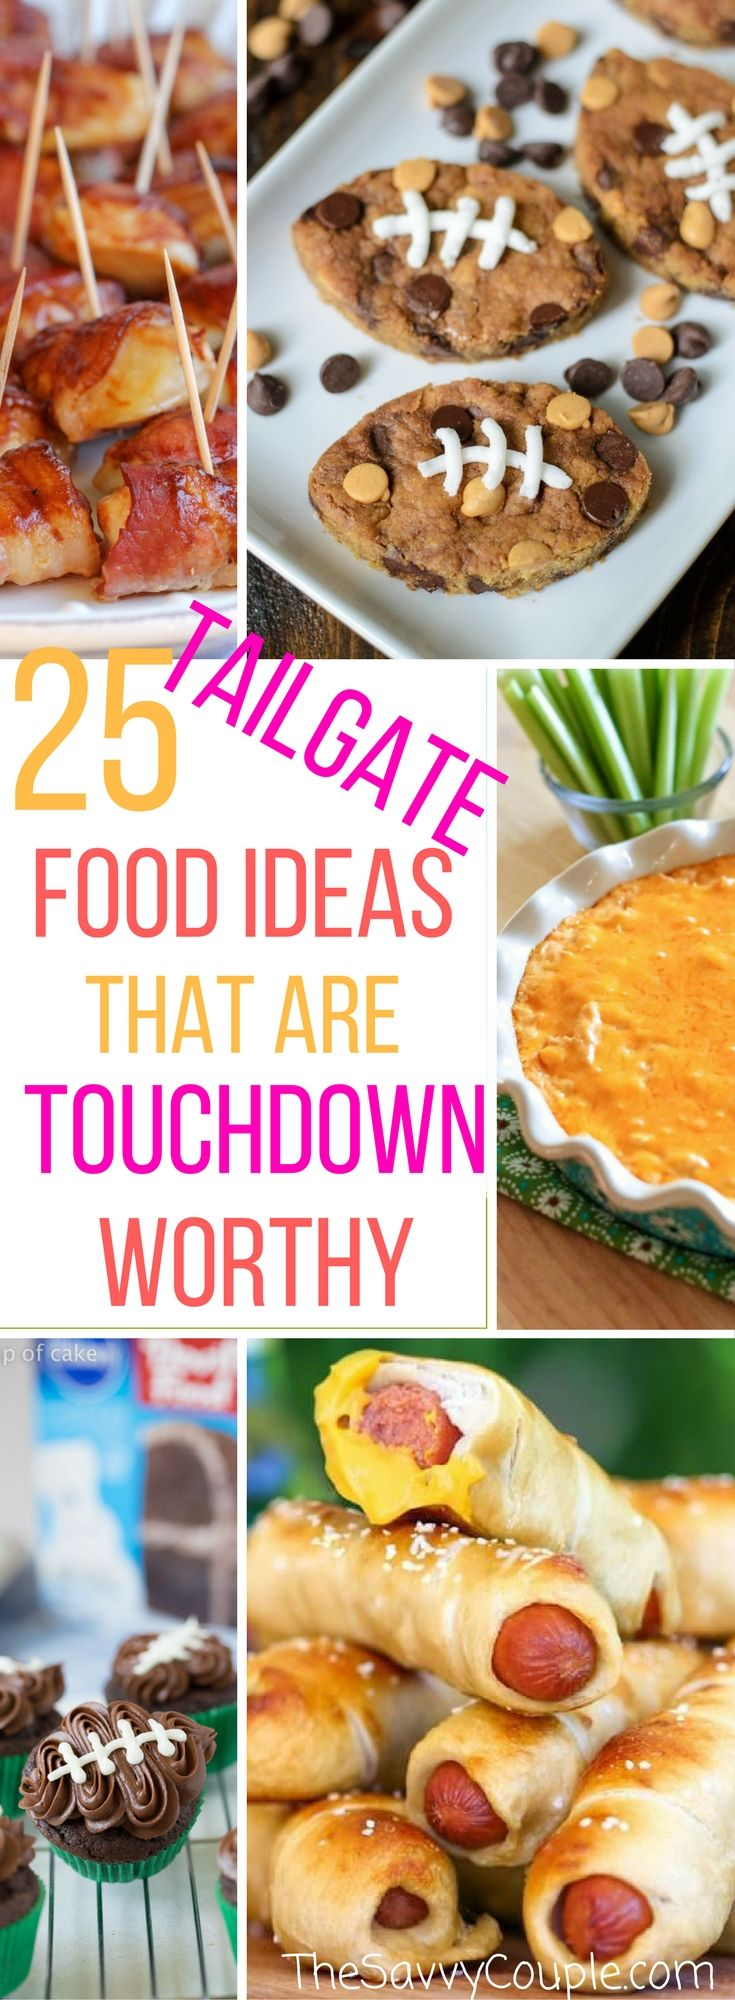 Here is the ultimate Pinterest list for easy tailgate foods. Football, fall, and food! These tailgate ideas that will please any crowd. This Pinterest roundup of tailgate ideas has been divided into five different categories; appetizers, chicken recipes, meaty recipes, slow cooker recipes, and dessert recipes. Try them today! Fall | Football | Tailgate Ideas | Tailgate Food | Roundup | Best of | The Savvy Couple via @TheSavvyCouple